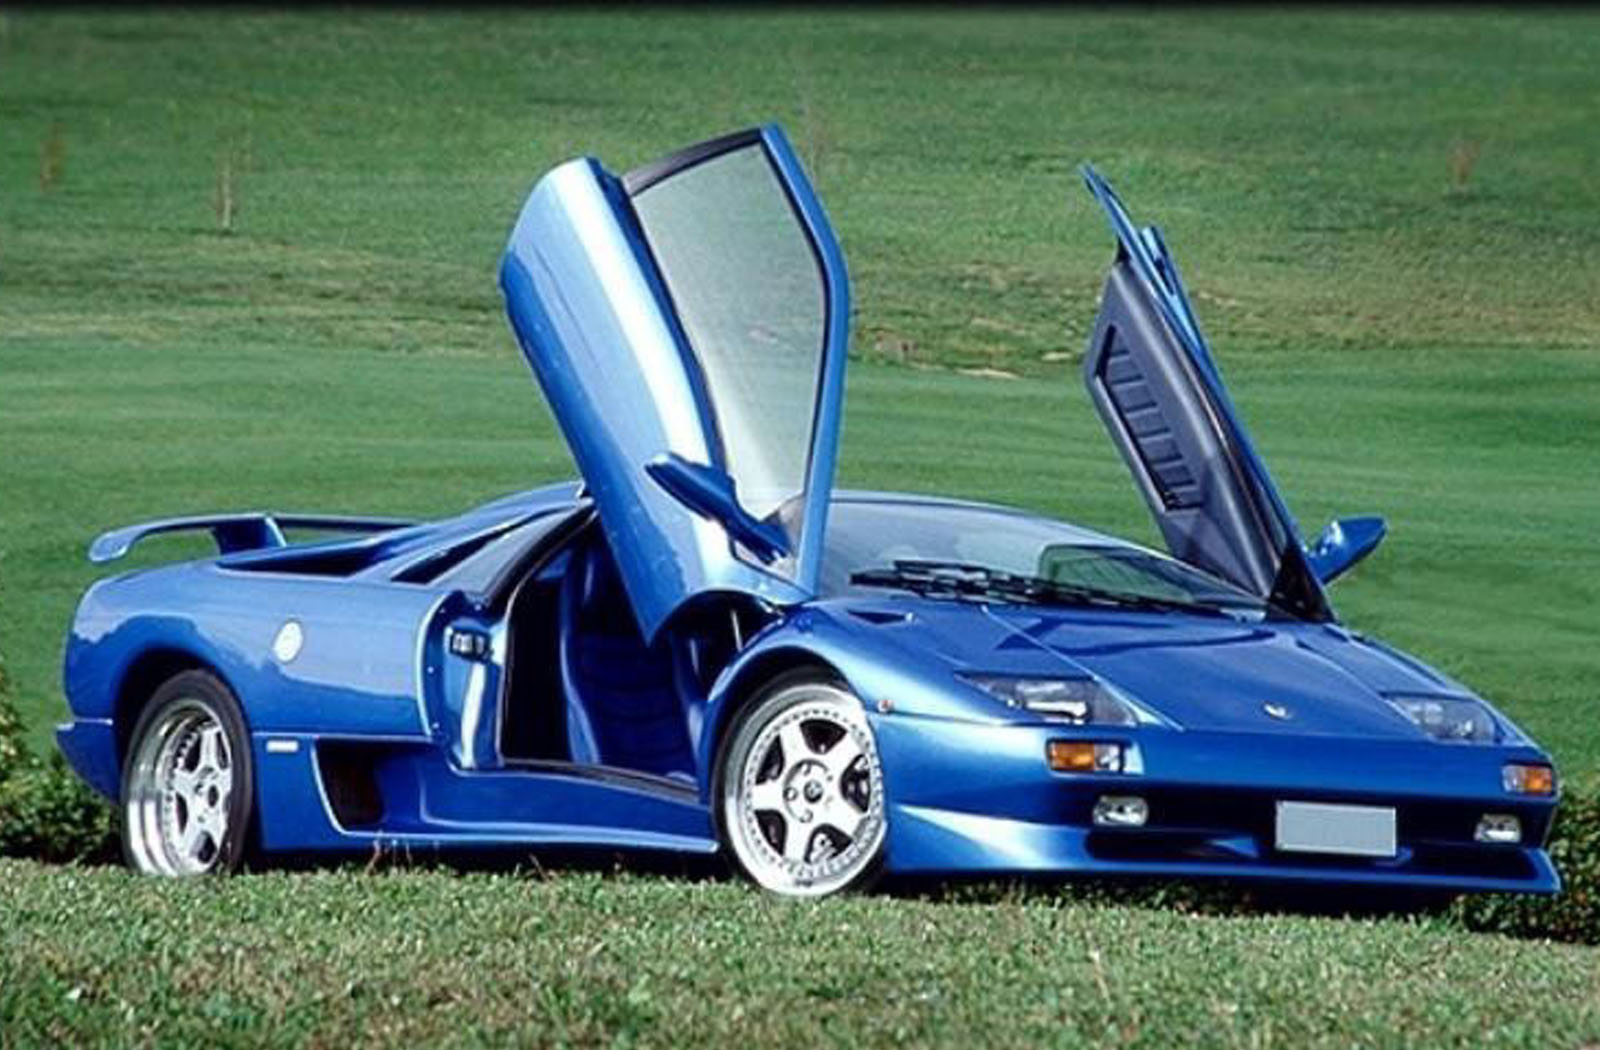 lamborghini diablo sv 1999 lighten or simplify various models by eliminating the base. Black Bedroom Furniture Sets. Home Design Ideas